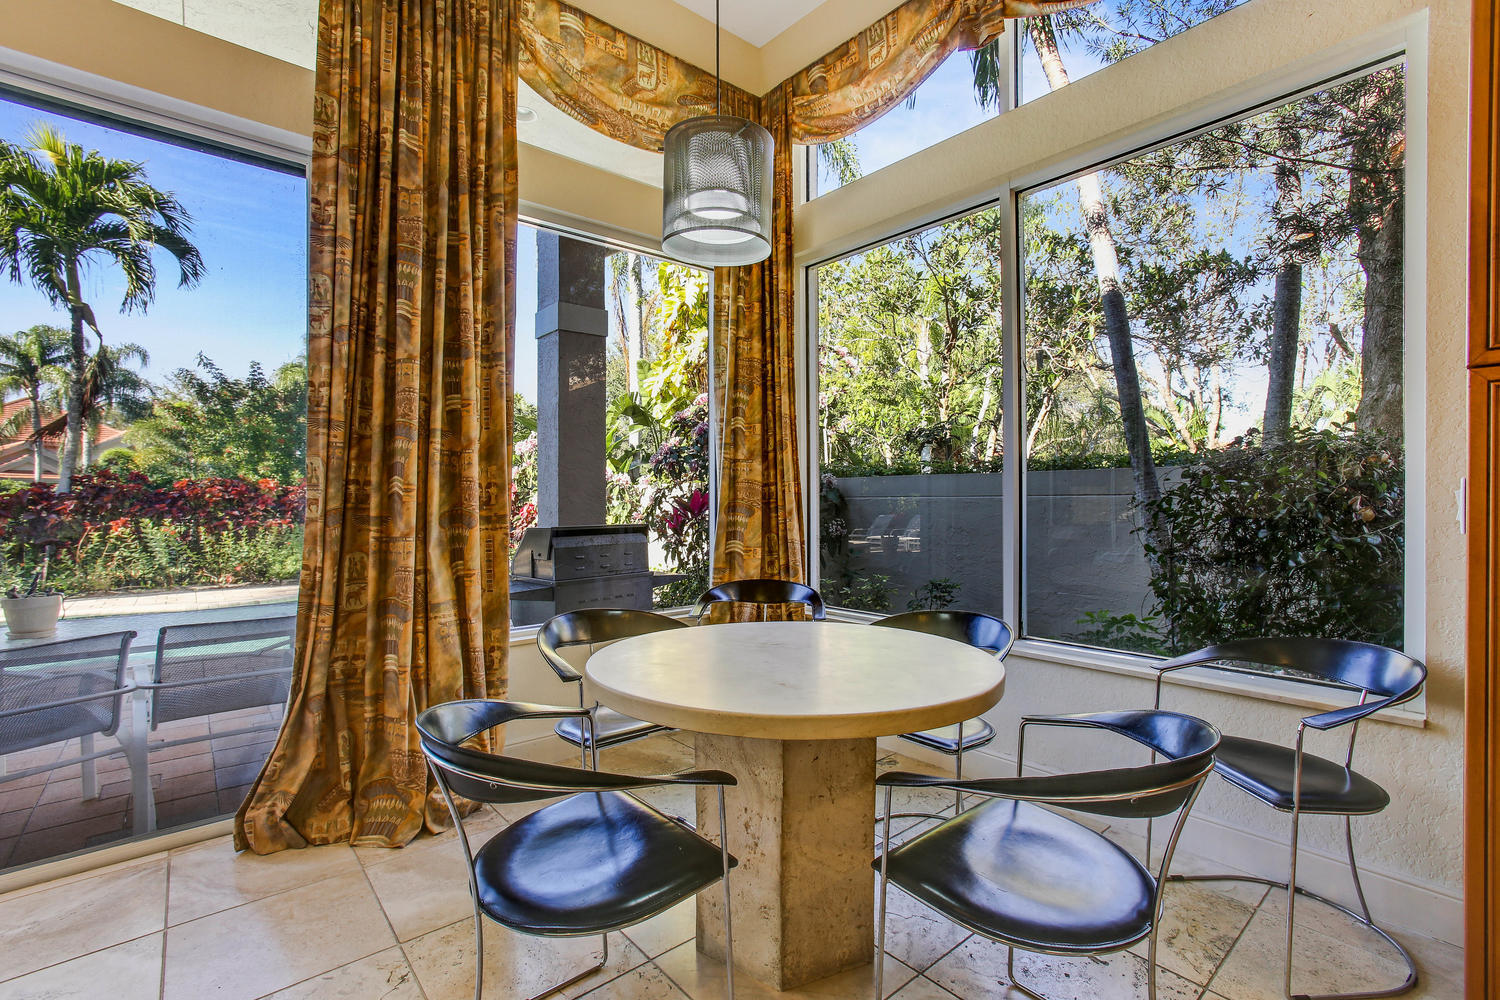 3659 Toulouse Drive, Palm Beach Gardens, Florida 33410, 4 Bedrooms Bedrooms, ,5.1 BathroomsBathrooms,A,Single family,Toulouse,RX-10366393